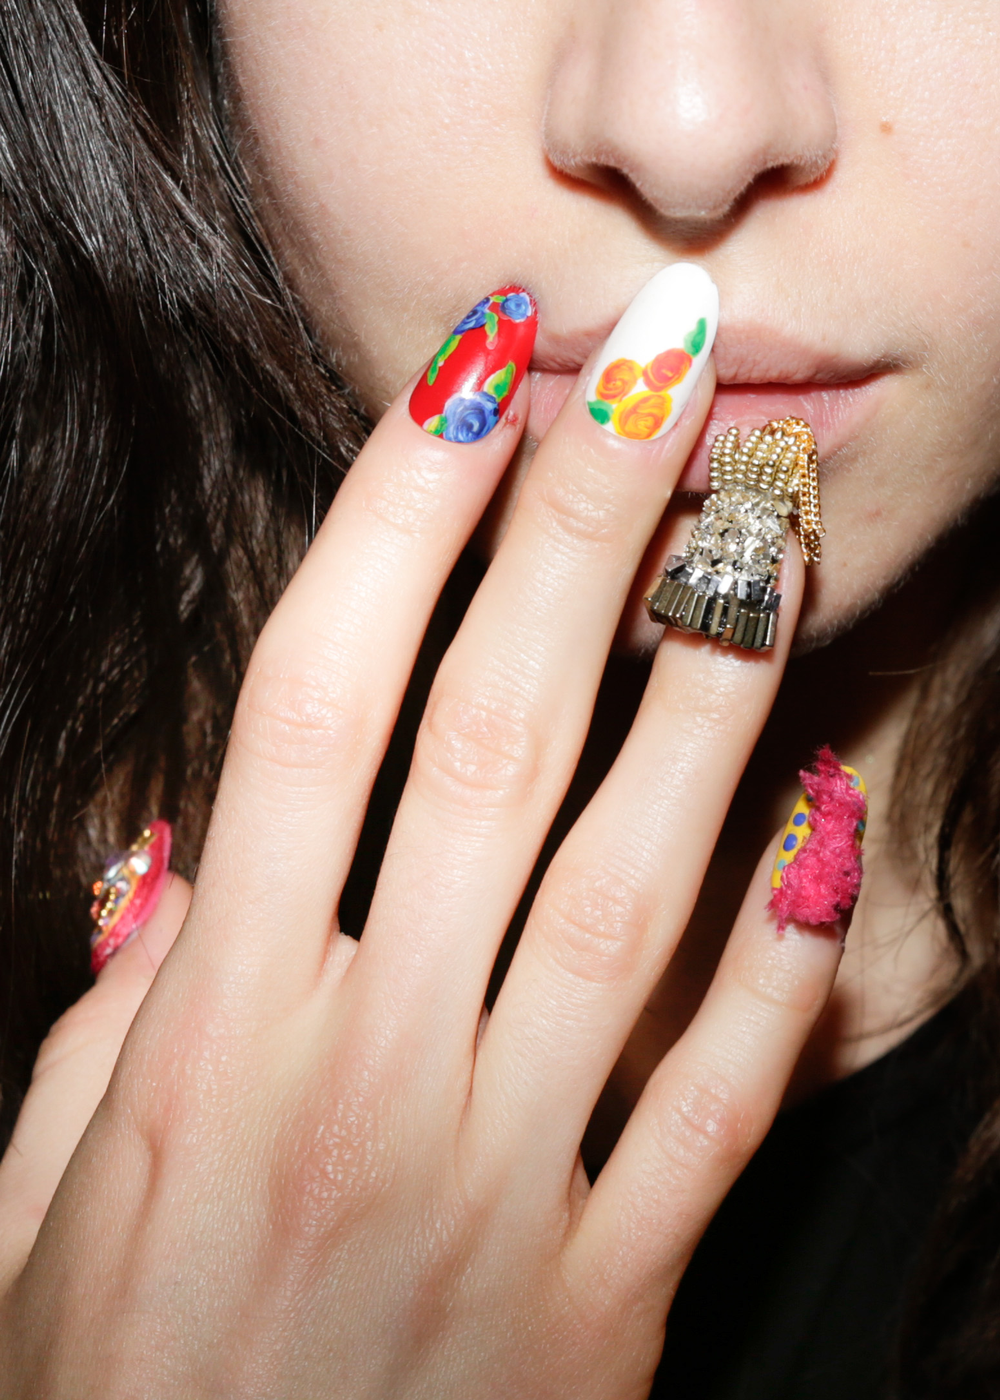 <p>CND for Libertine. <em>Carissa Lancaster @carissalancaster for The Nailscape</em></p>